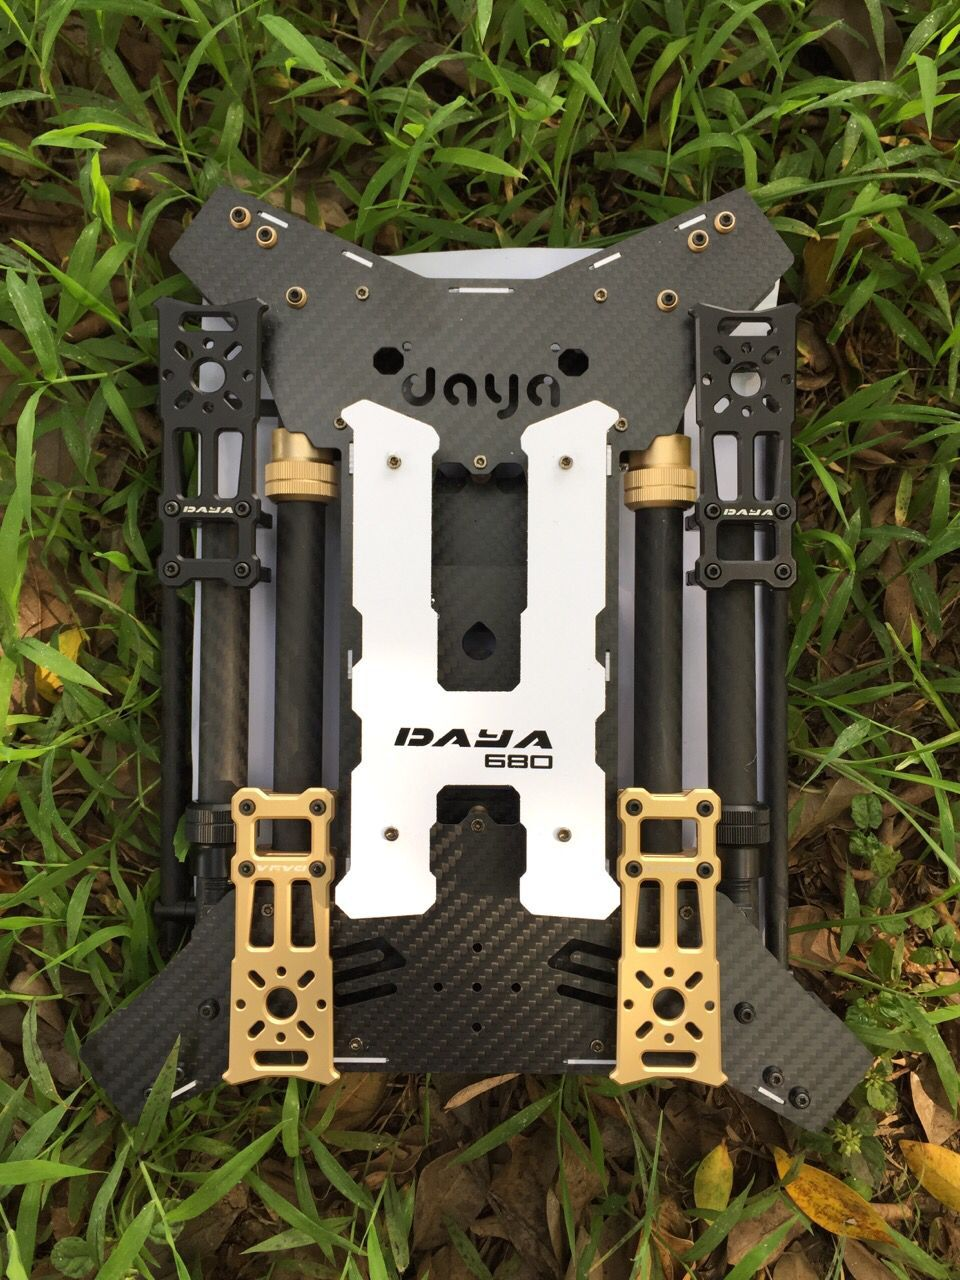 680 Daya 680 daya-680 Folding 4-Axis Carbon Fiber UAV H4 Quadcopter Frame w/Landing Gear for FPV 680 daya 680 daya 680 folding 4 axis carbon fiber uav h4 quadcopter frame w landing gear for fpv rc multicopter drone frame kit